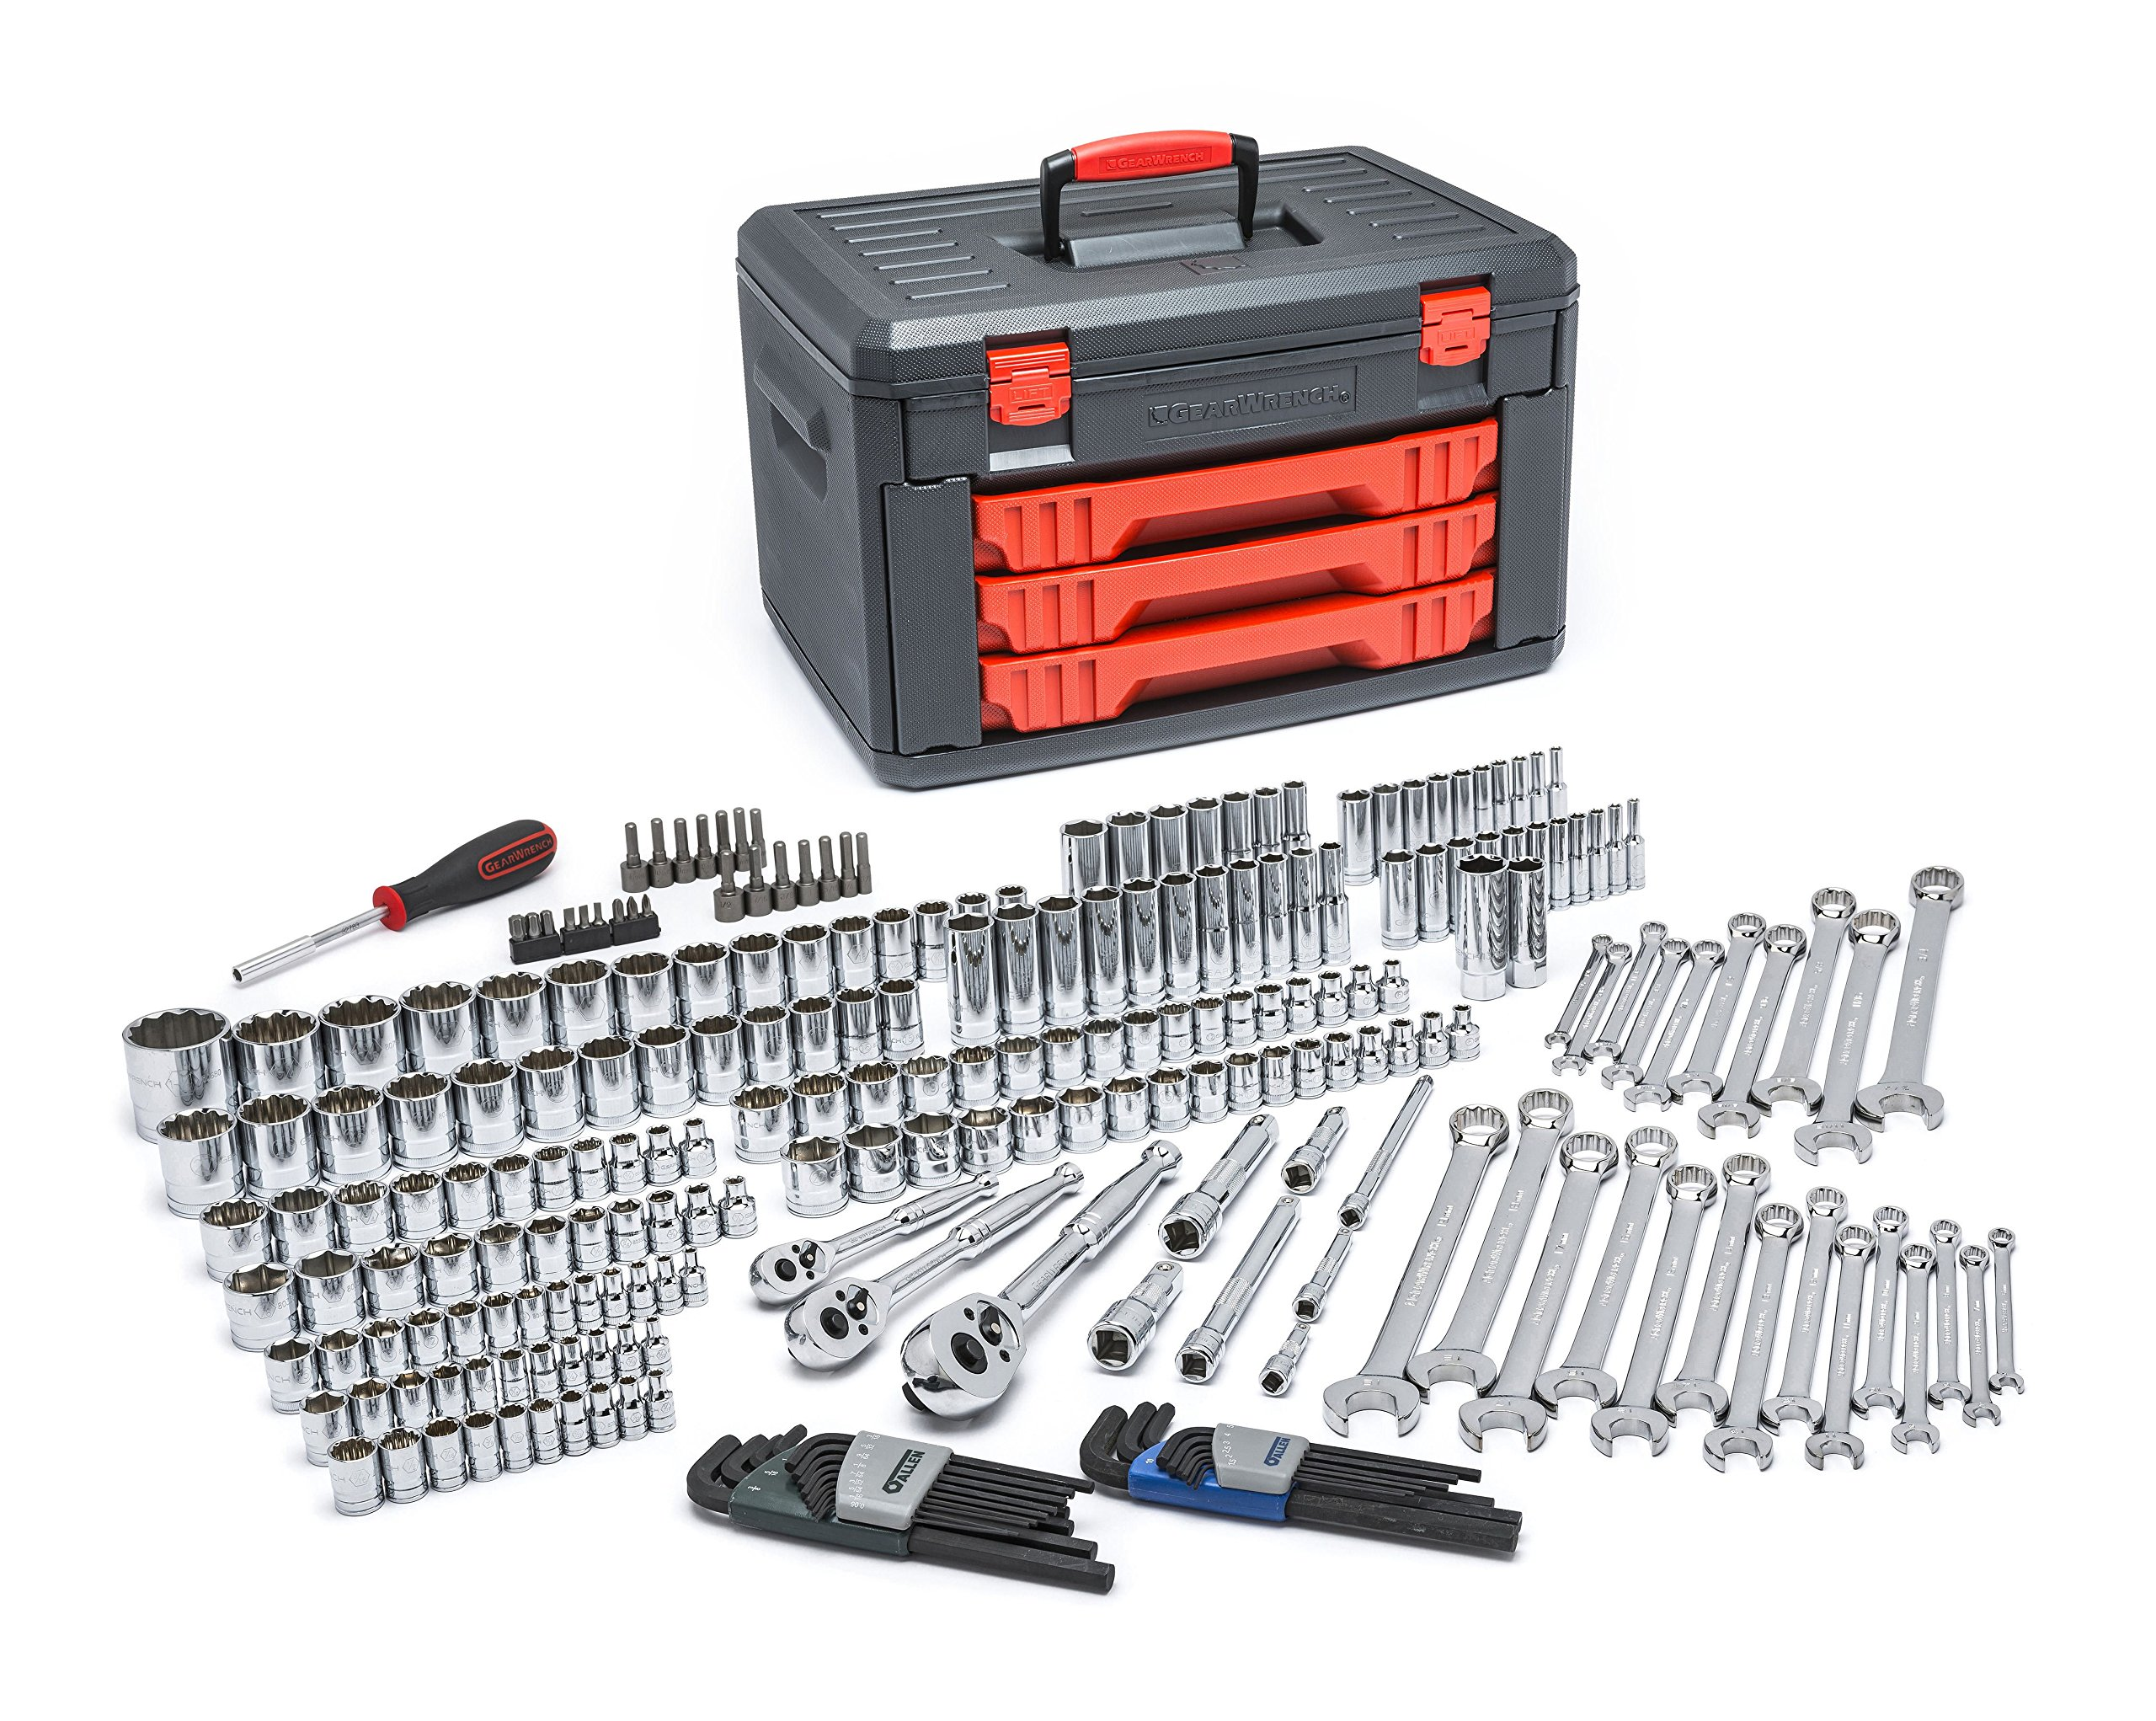 GearWrench TOOL 80942 239 Pc. 1/4'', 3/8'',1/2'' Drive Metric Socket/Ratchet Set